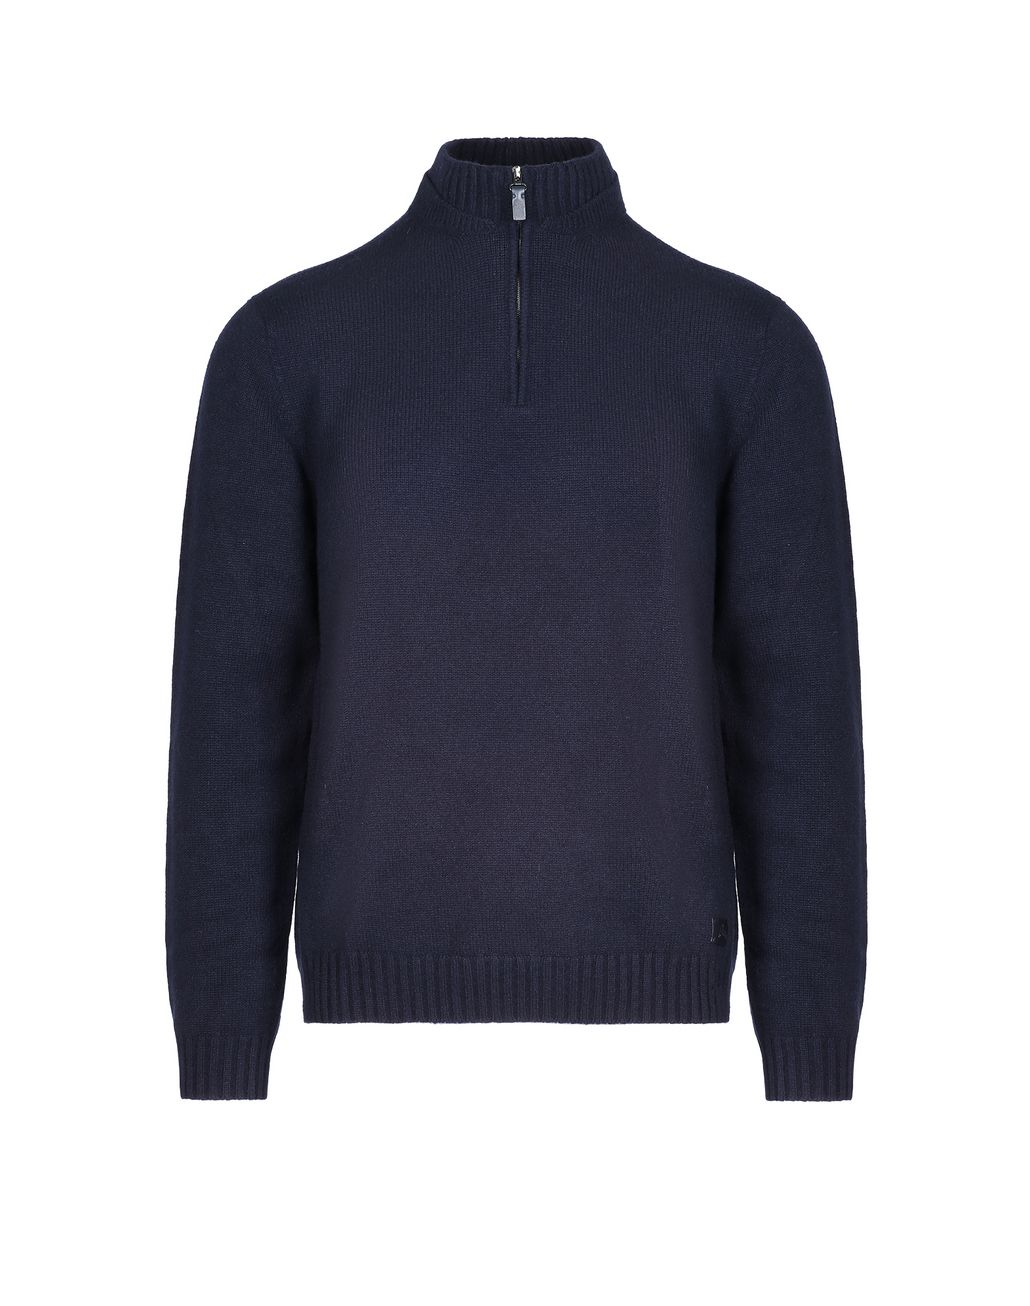 BRIONI Navy Blue Mock Neck Zipped Sweater Knitwear Man f